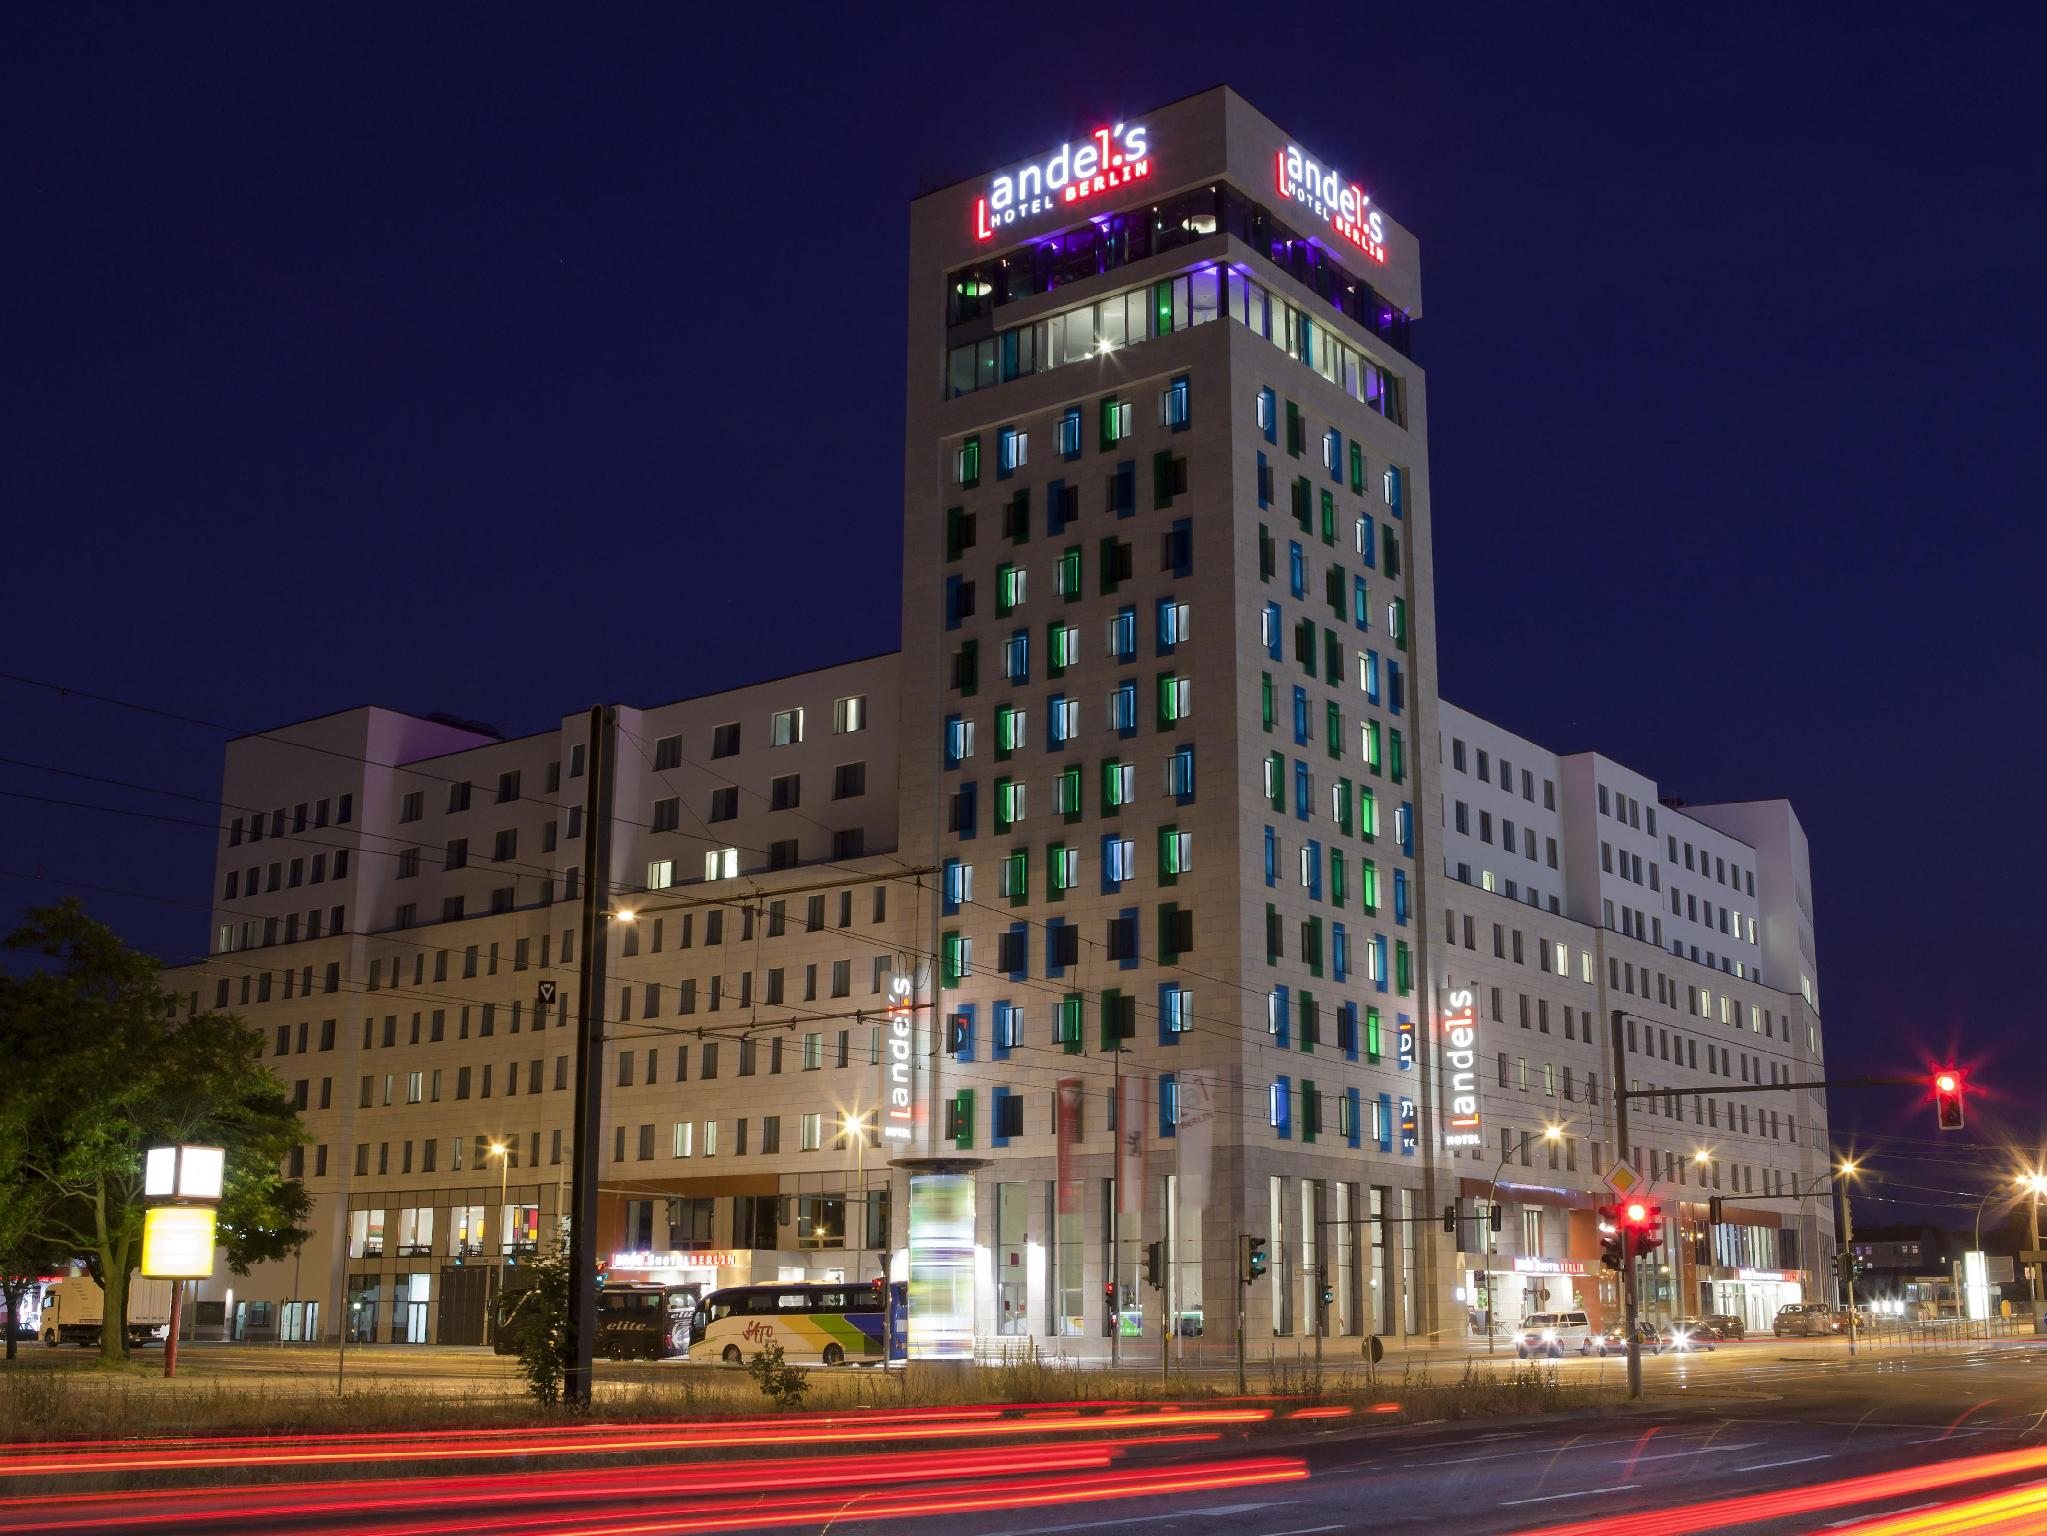 andel's Hotel Berlin, managed by Vienna International Hotels and Resorts Béc-lin